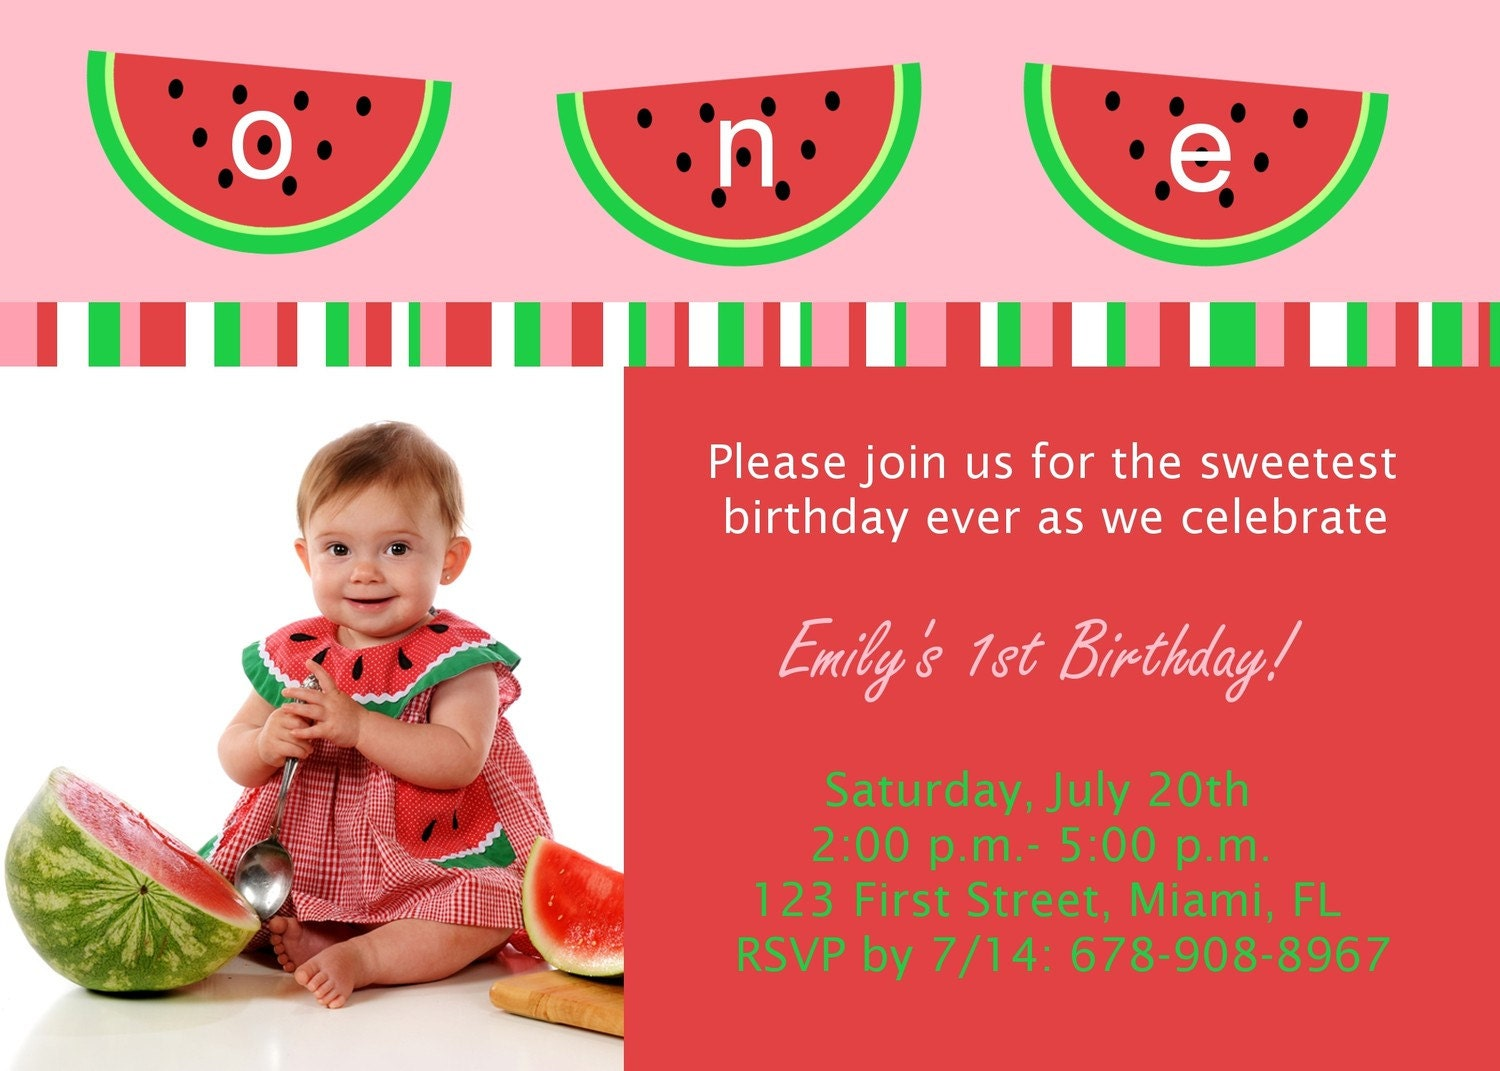 watermelon birthday party invitation diy printable, Birthday invitations